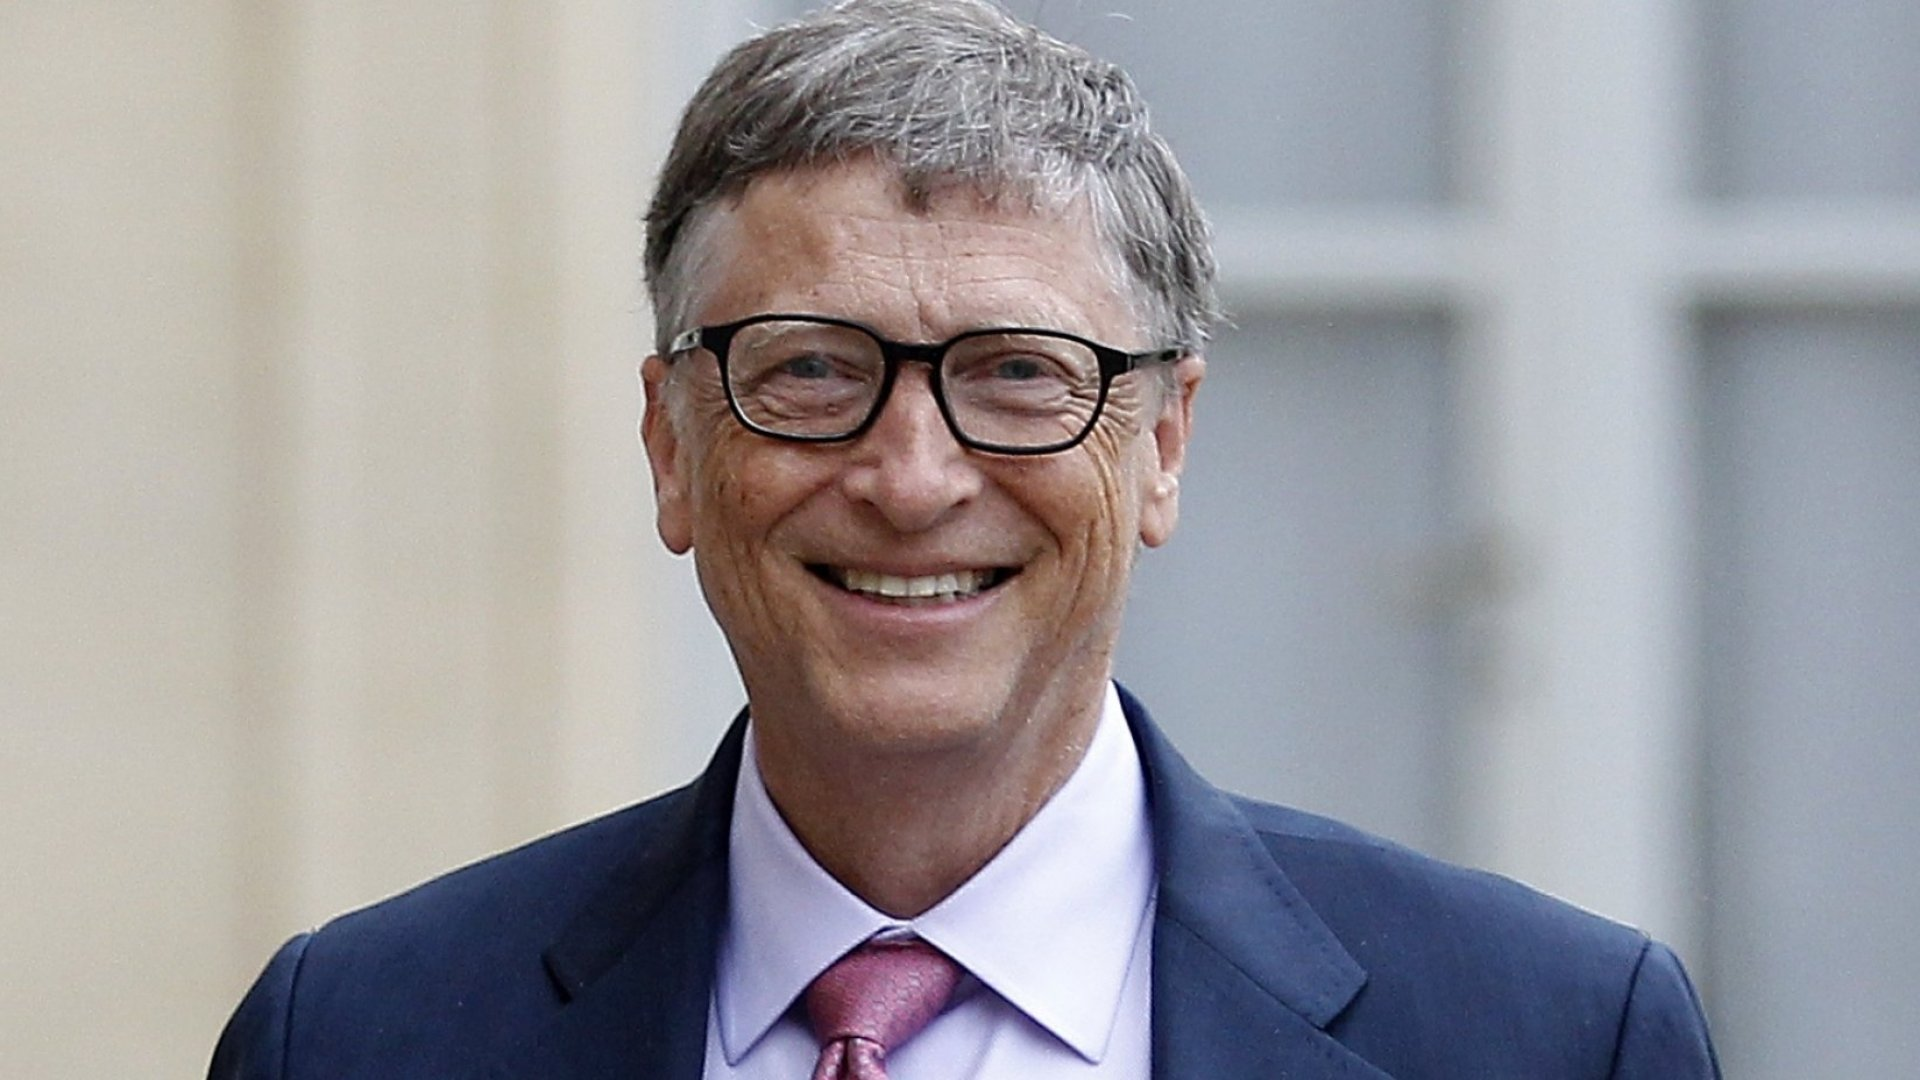 Bill Gates Has Invested Millions in These 6 Silicon Valley Startups